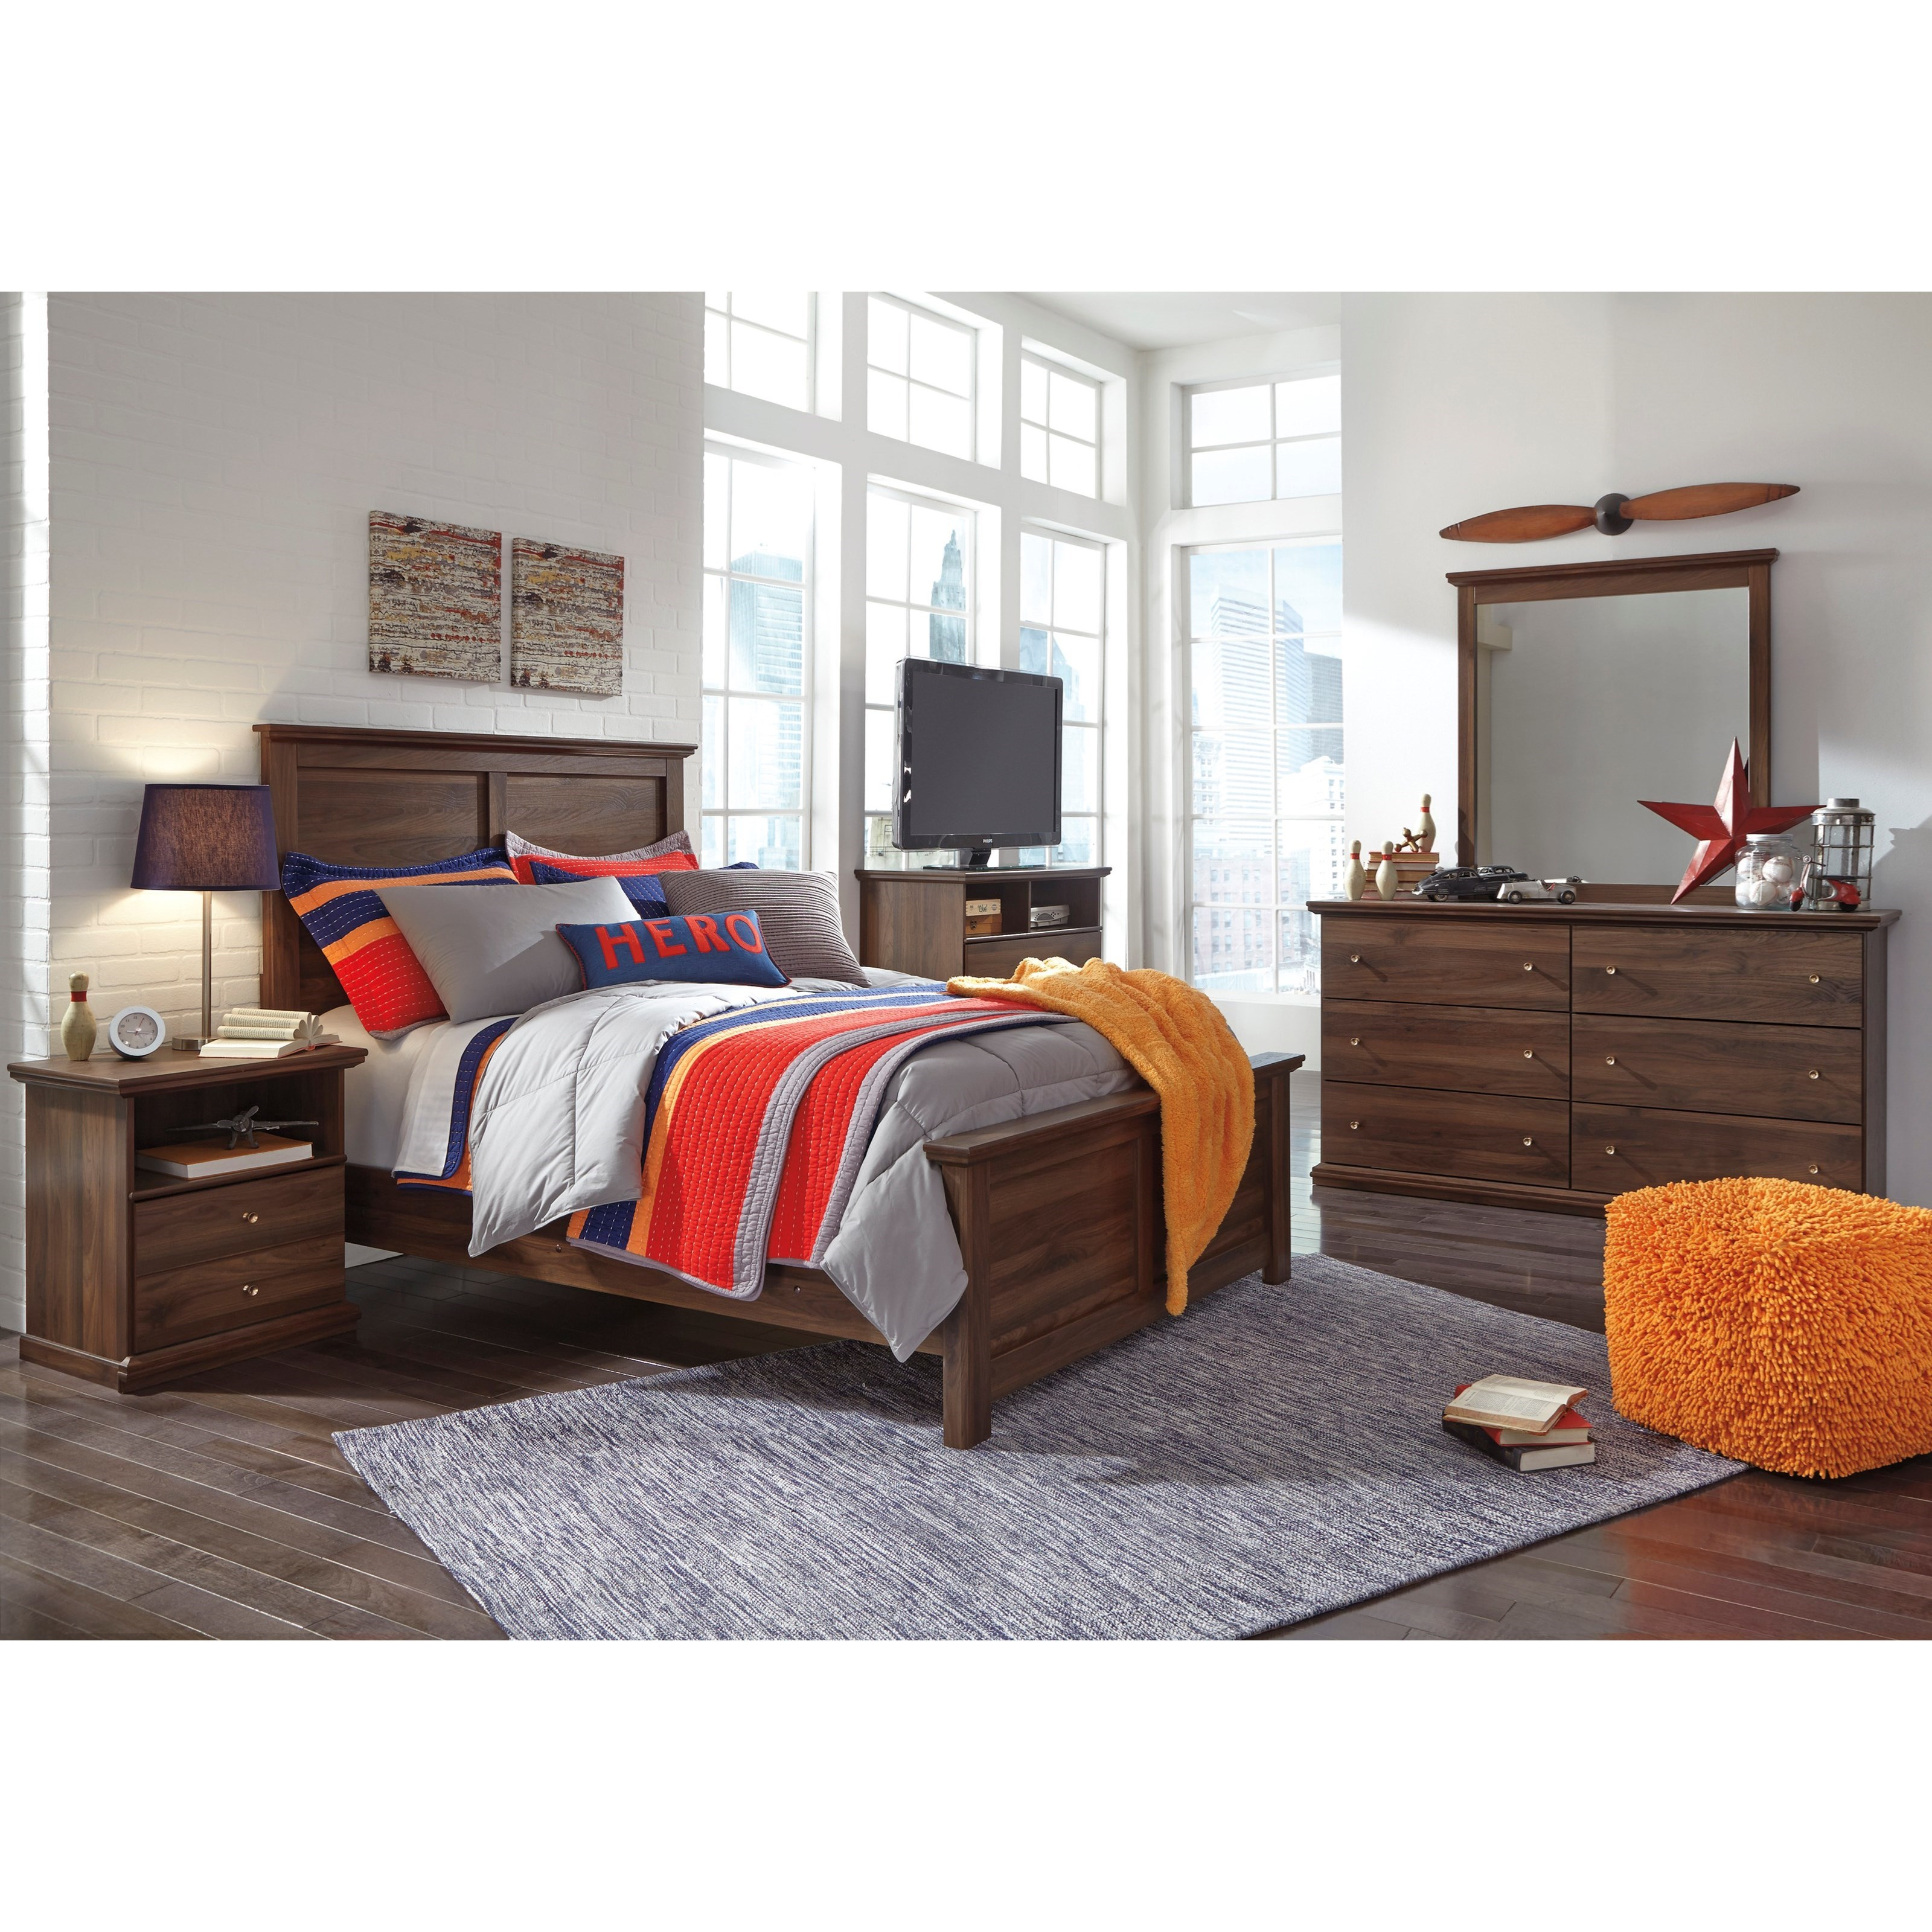 Signature Design by Ashley Burminson Full Bedroom Group - Item Number: B135 F Bedroom Group 5